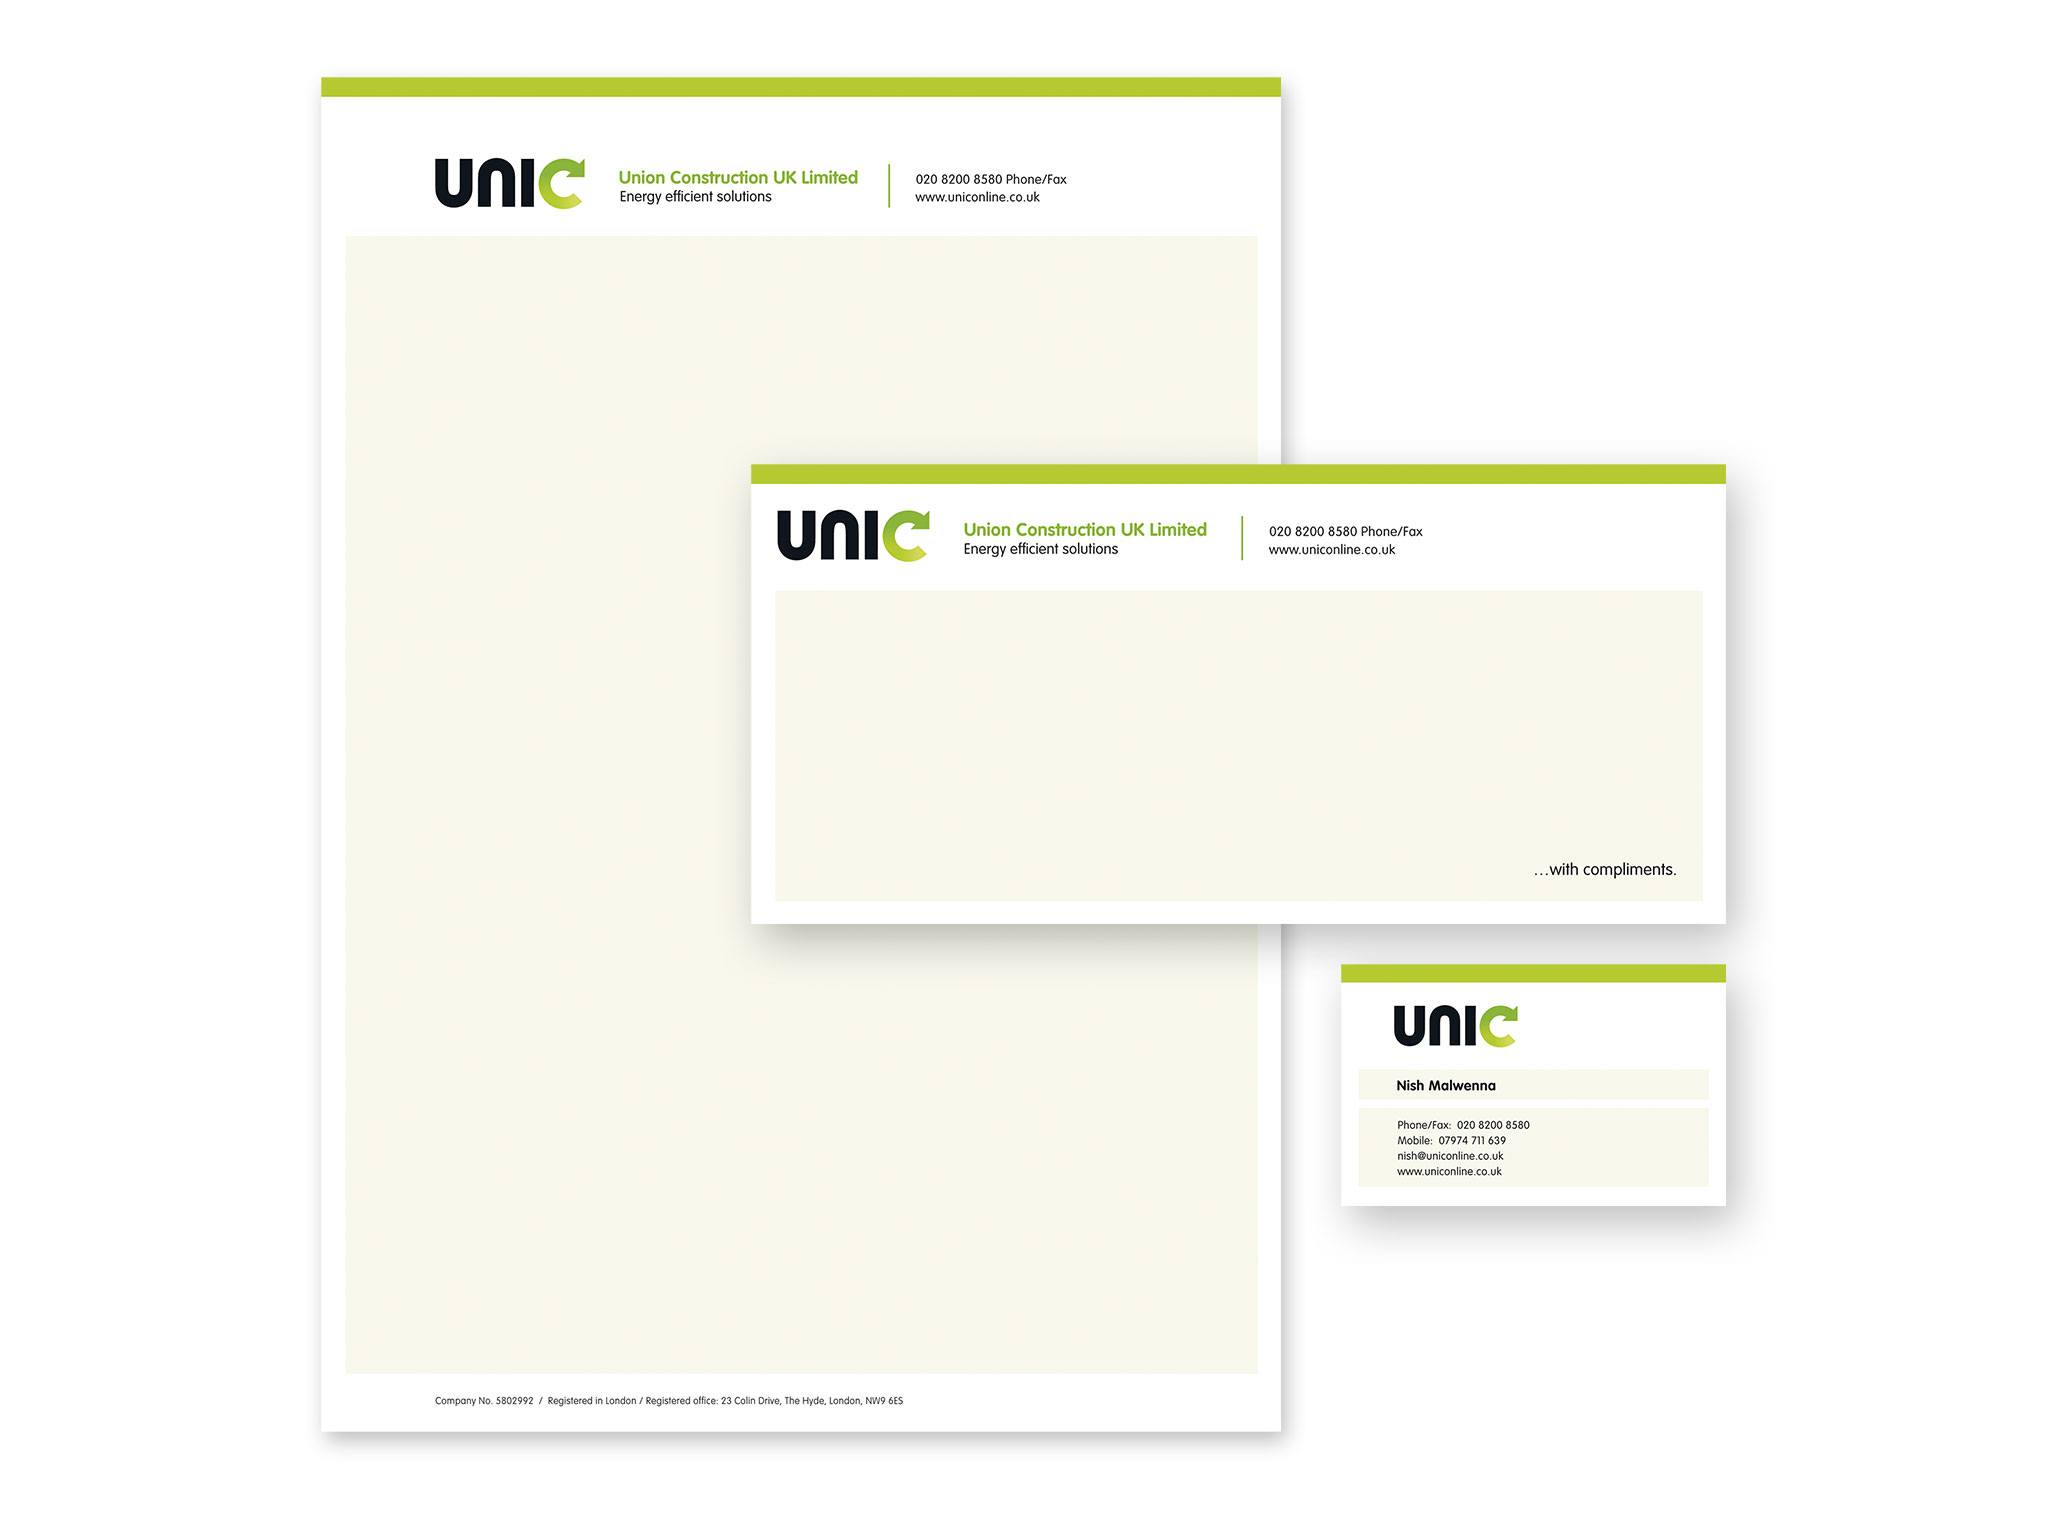 Ensemble shot showing design of stationery elements for UNIC